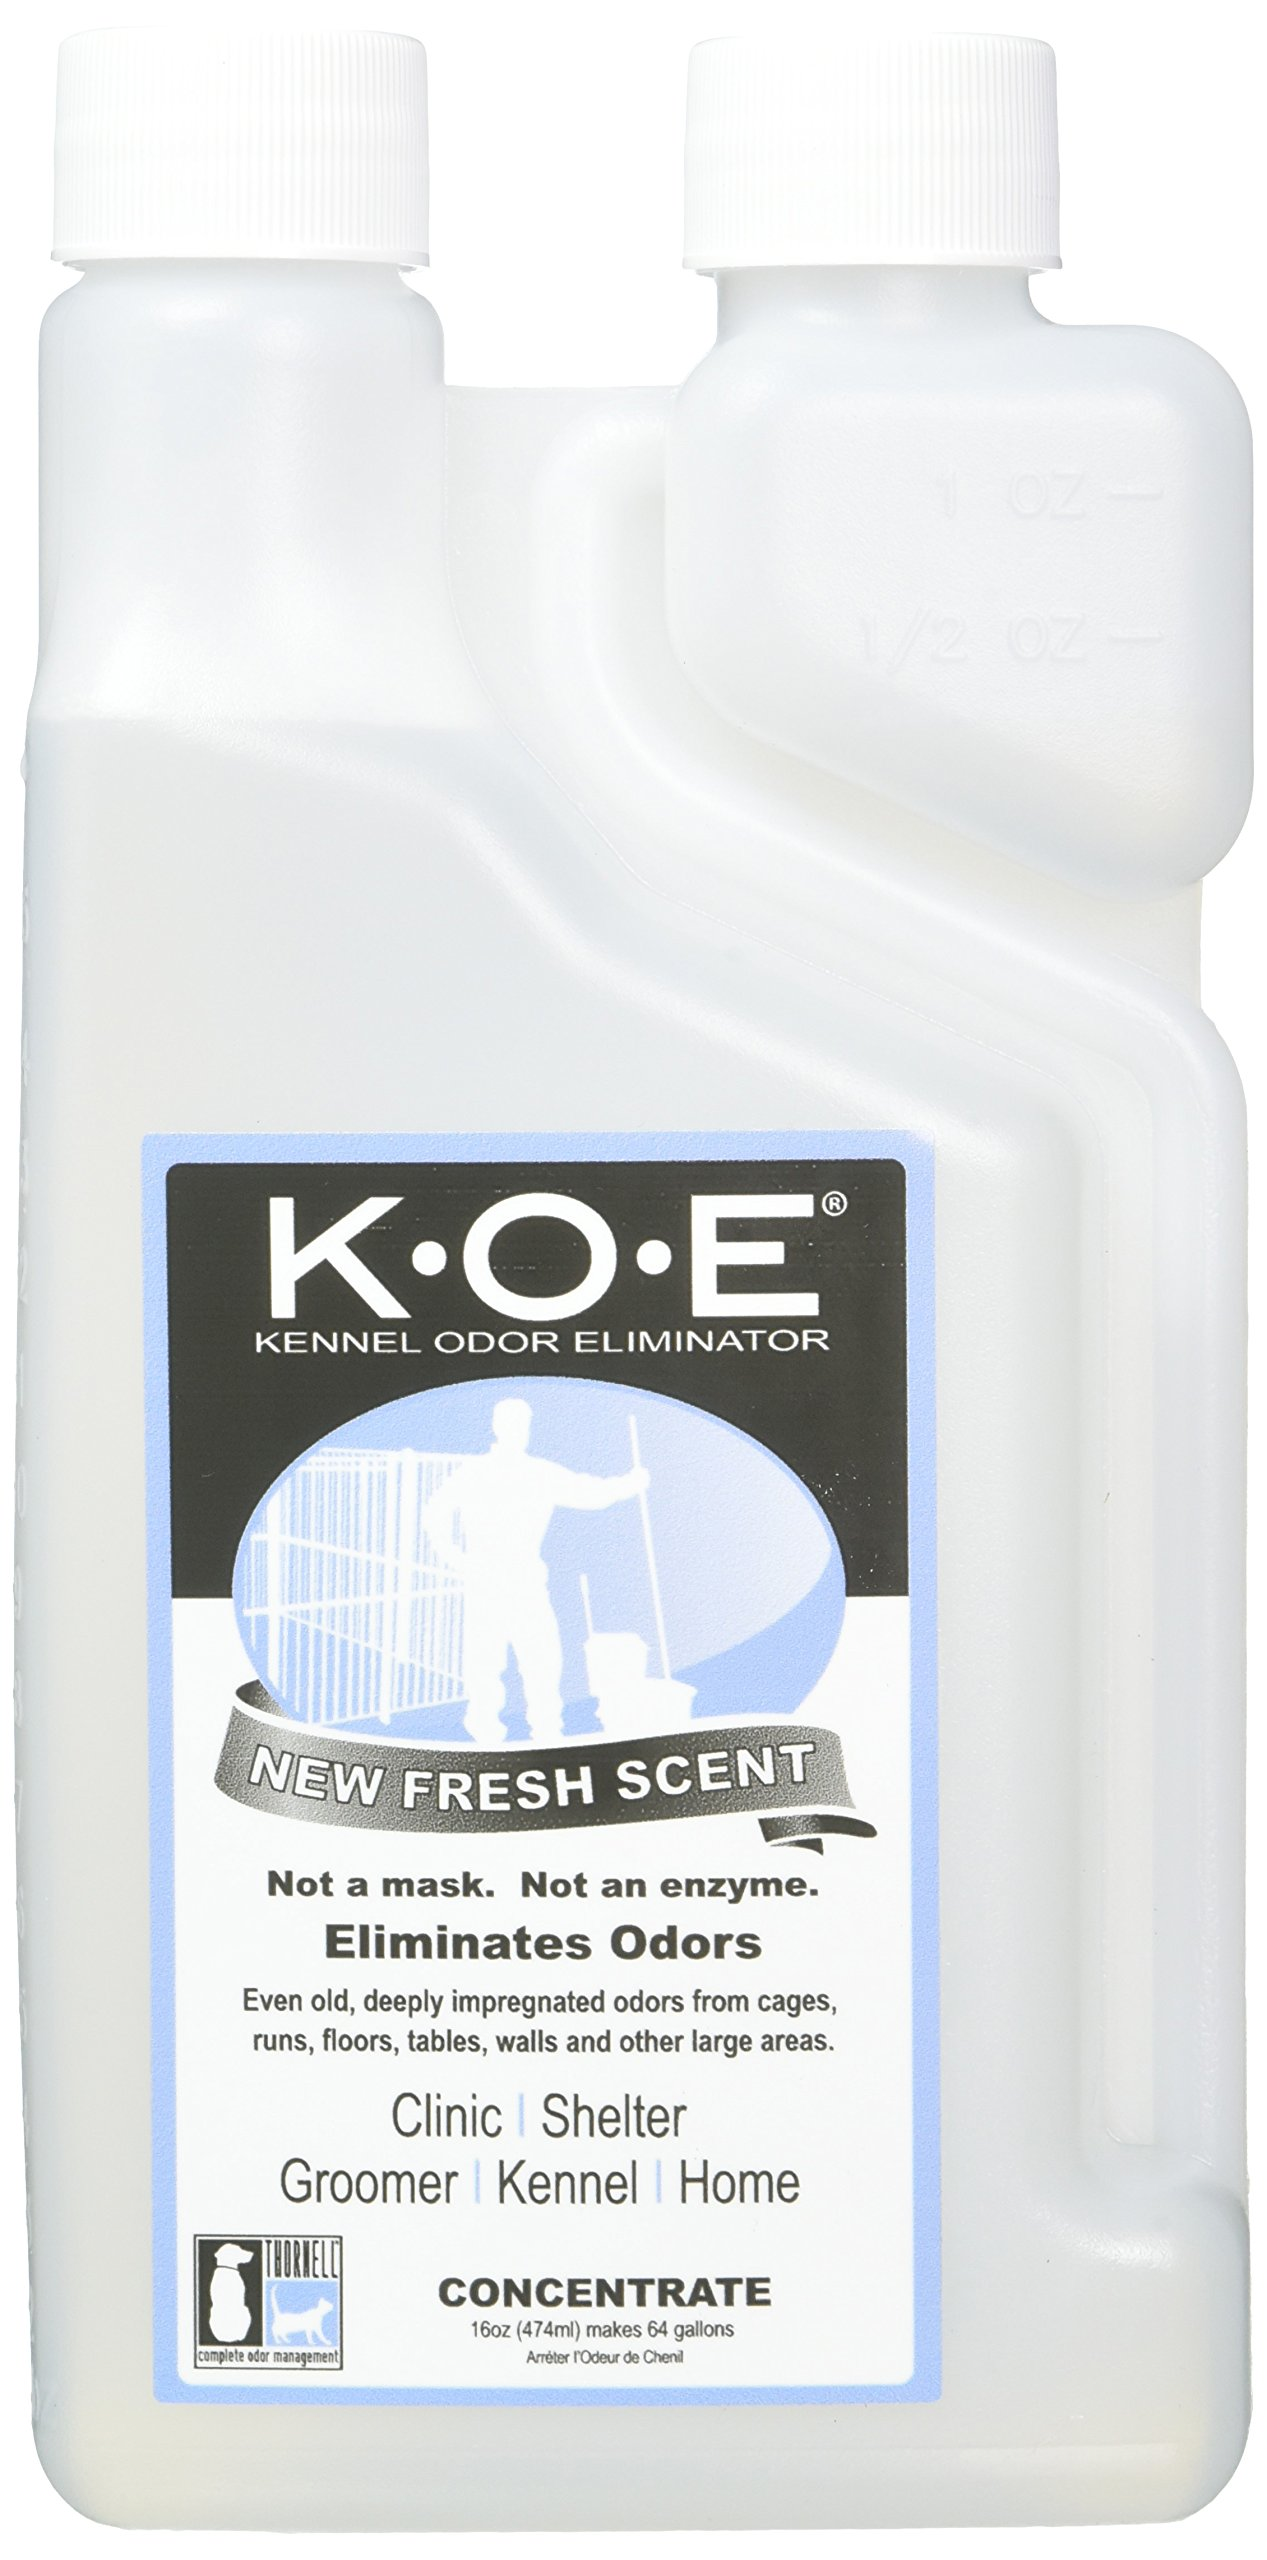 Thornell KOEFS-P K.O.E Kennel Odor Eliminator Fresh Scent Concentrate by THORNELL